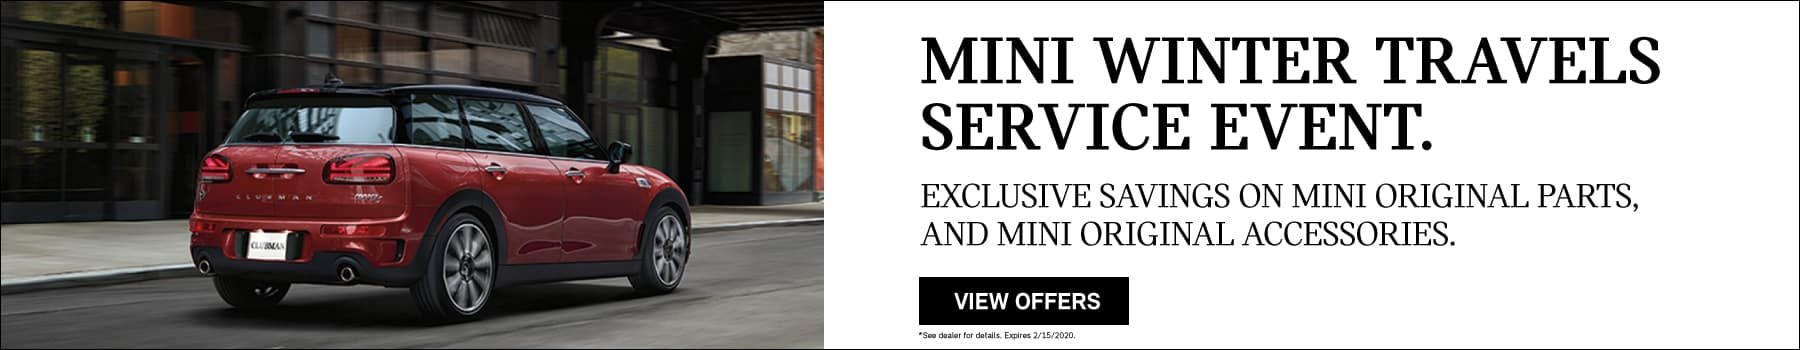 HE MINI WINTER TRAVELS SERVICE EVENT. EXCLUSIVE SAVINGS: DECEMBER 1 – FEBRUARY 15, 2020. Red Clubman driving on road.